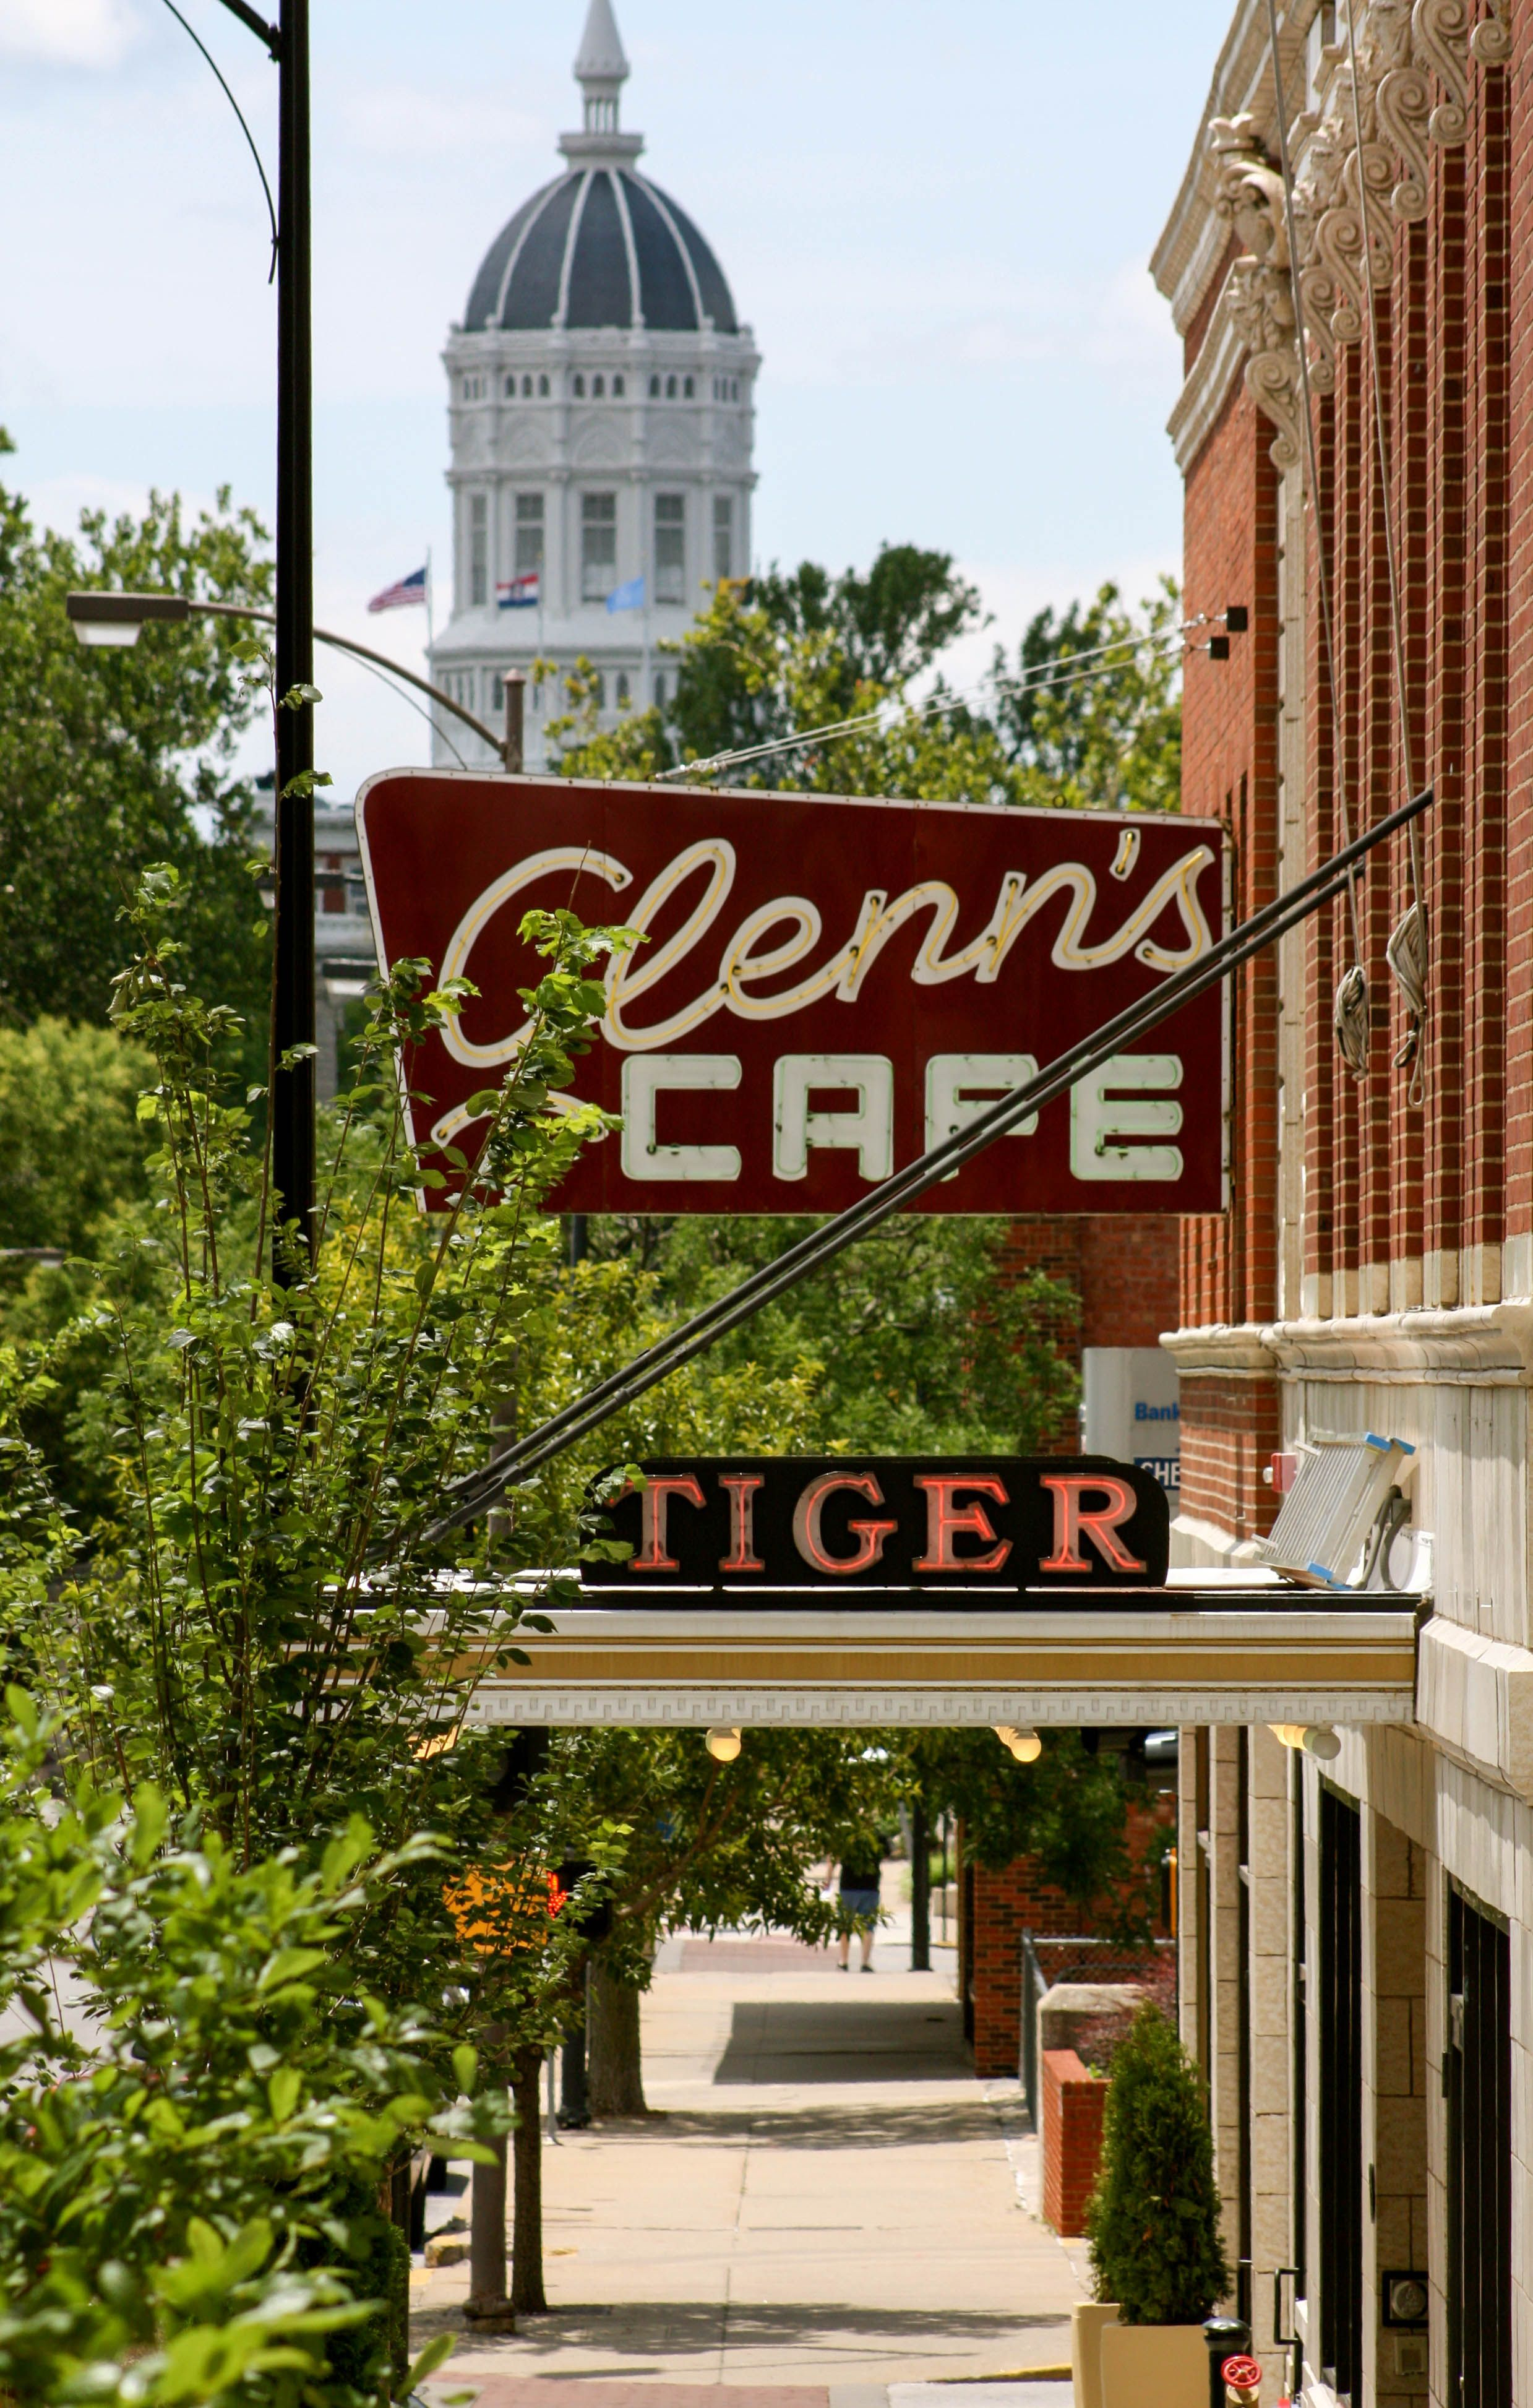 Great Shot From The Missouri Division Of Tourism Jesse Hall Glenn S Cafe And The Tiger Hotel Columbiamo Hobbies To Take Up Jesse Hall Columbia Missouri